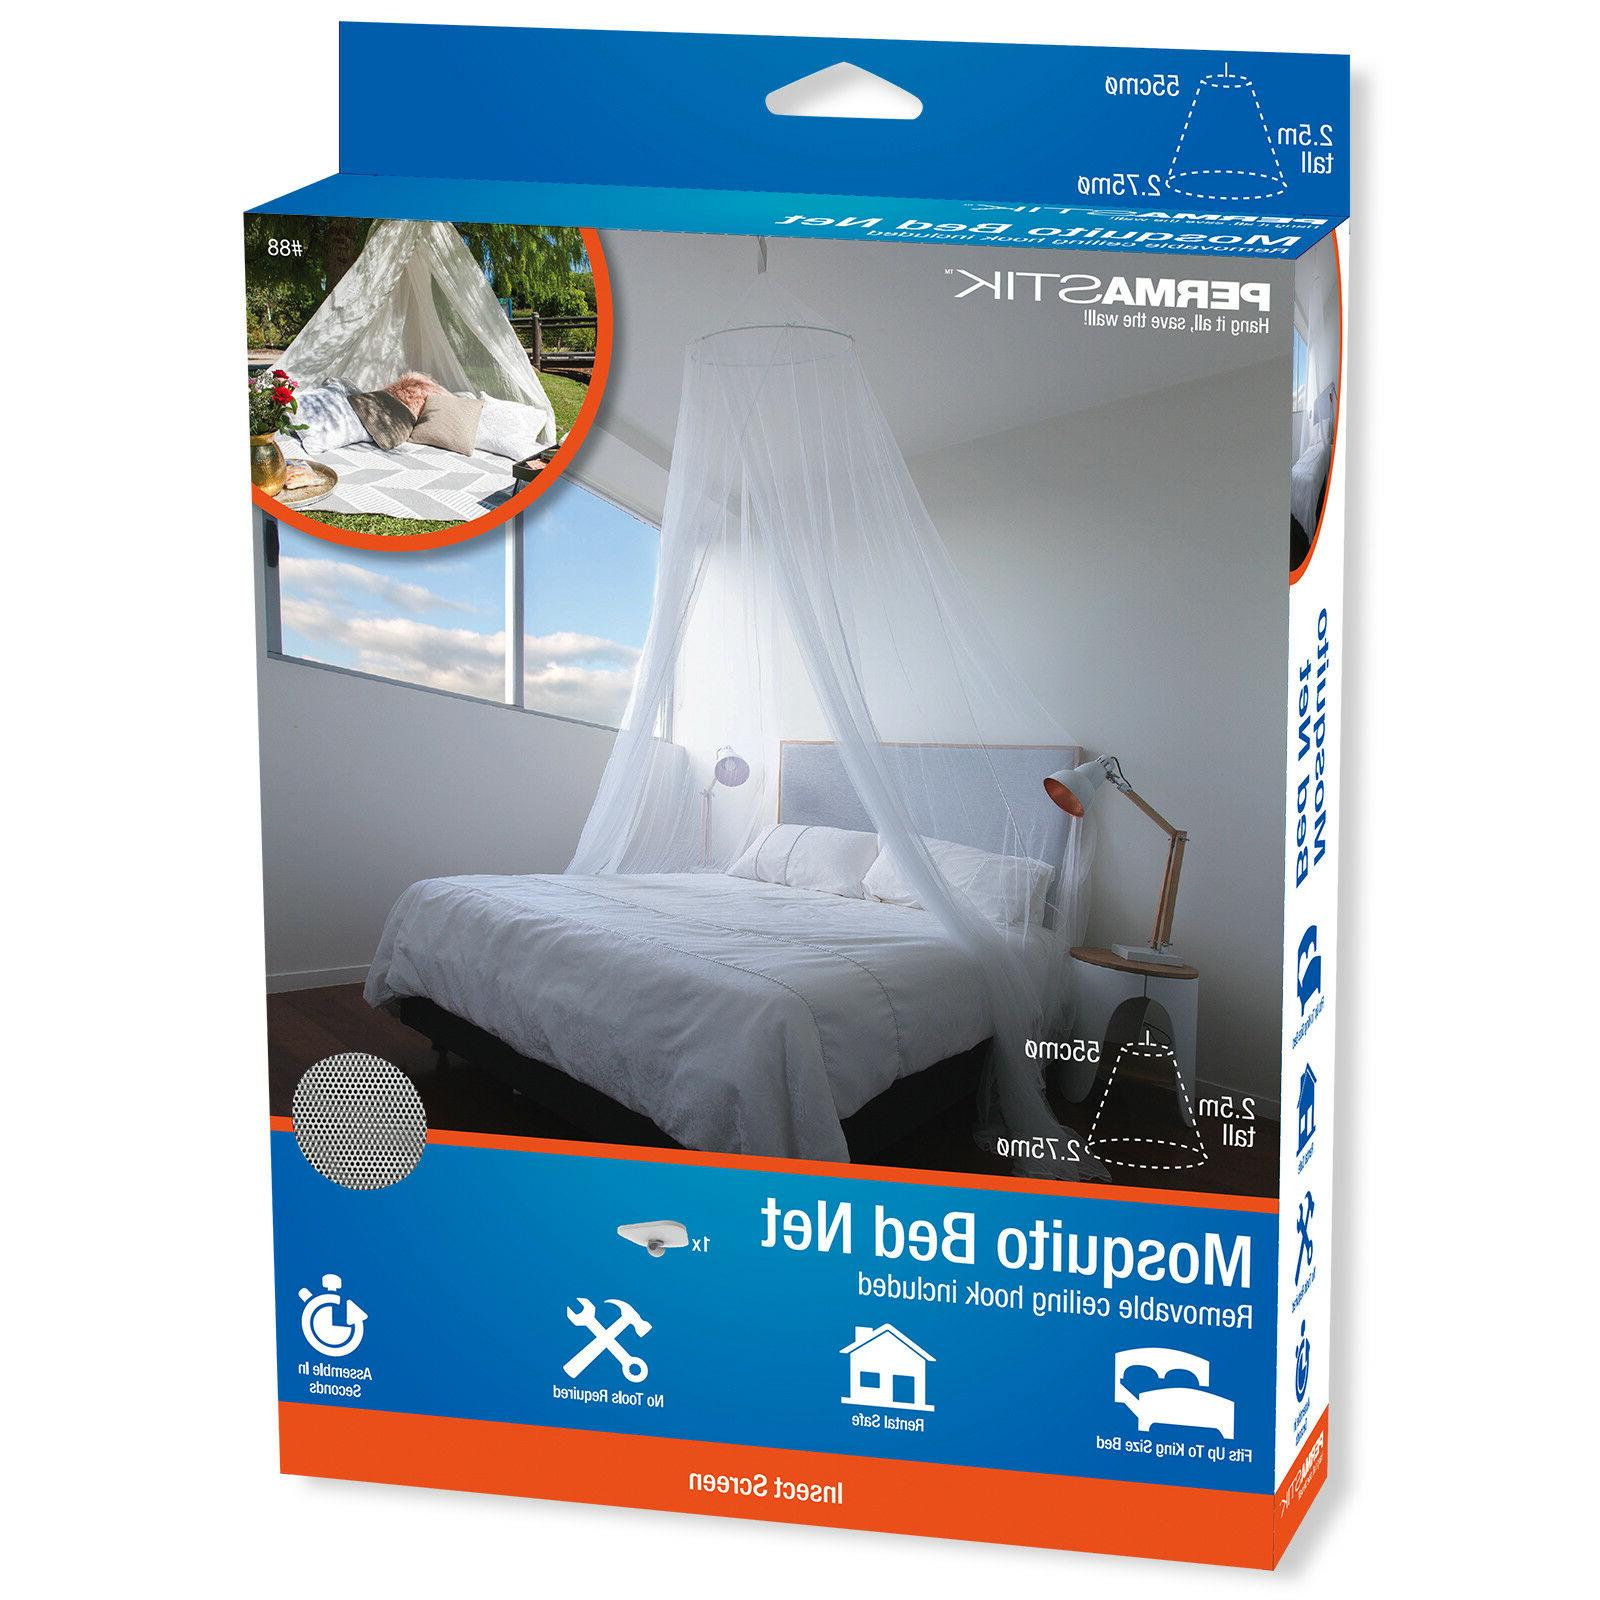 mosquito bed net 2 5m high removable